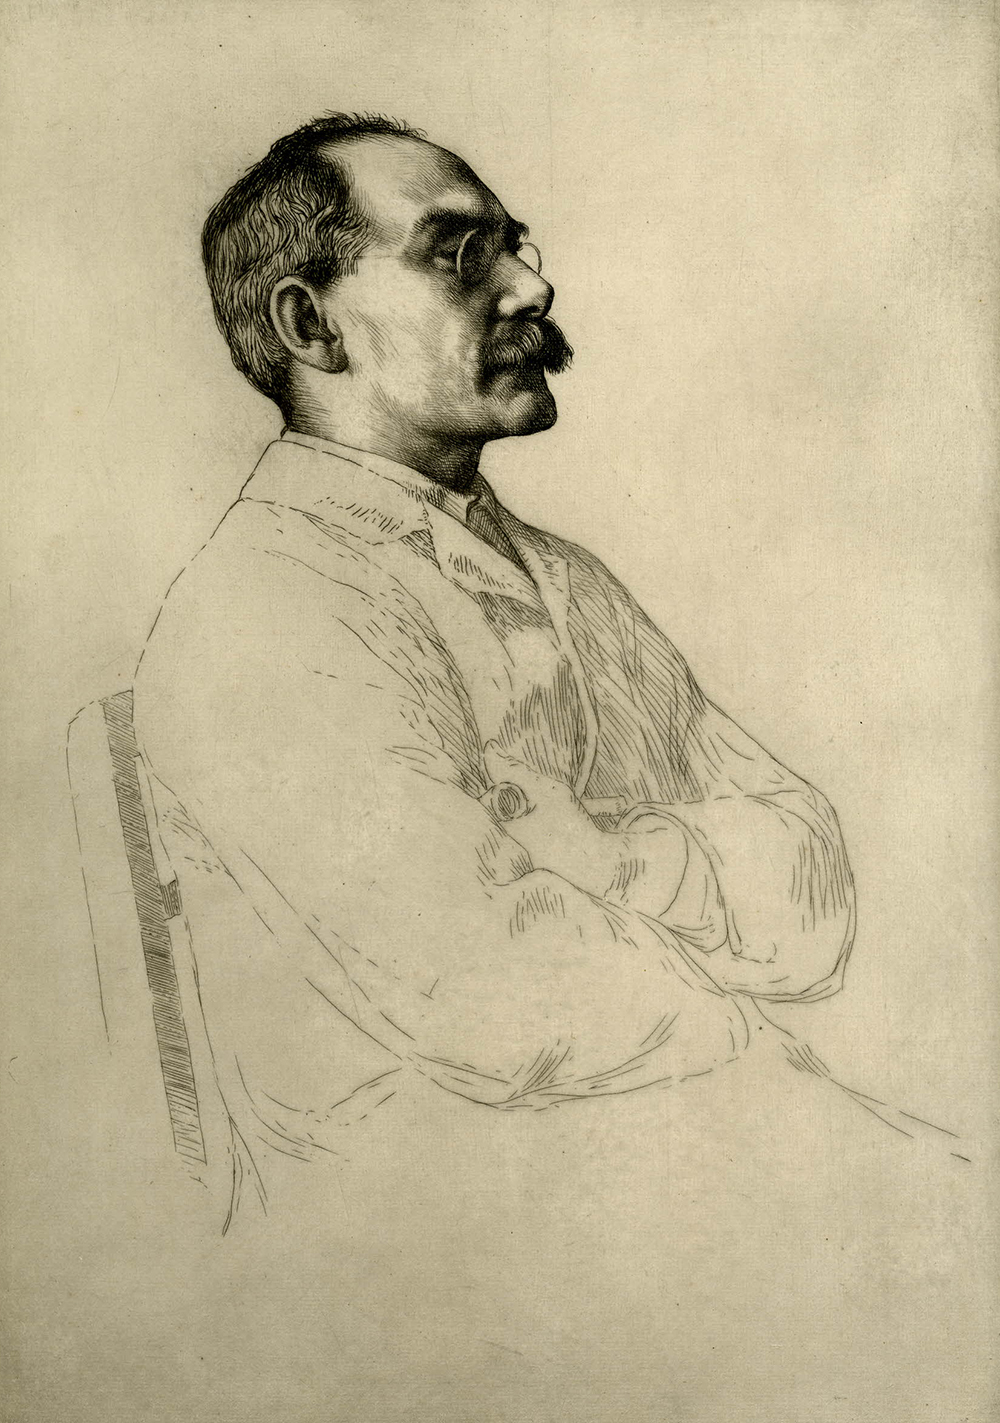 """""""Rudyard Kipling, No.1,"""" by William Strang, 1898. The British Museum, Bequeathed by Campbell Dodgson."""